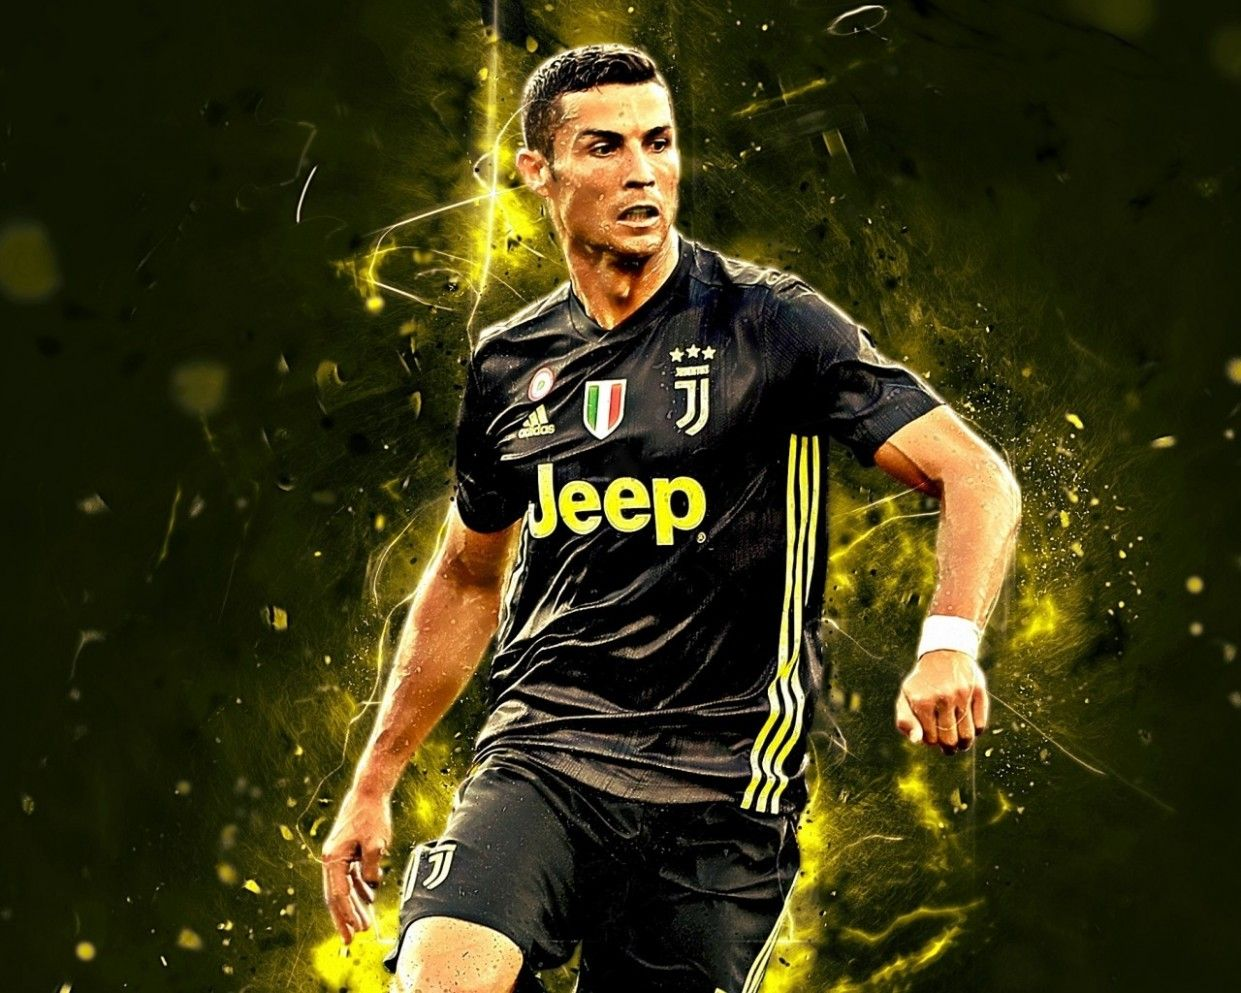 I Will Tell You The Truth About Soccer Wallpapers In The Next 13 Seconds Cristiano Ronaldo Ronaldo Cristiano Ronaldo News